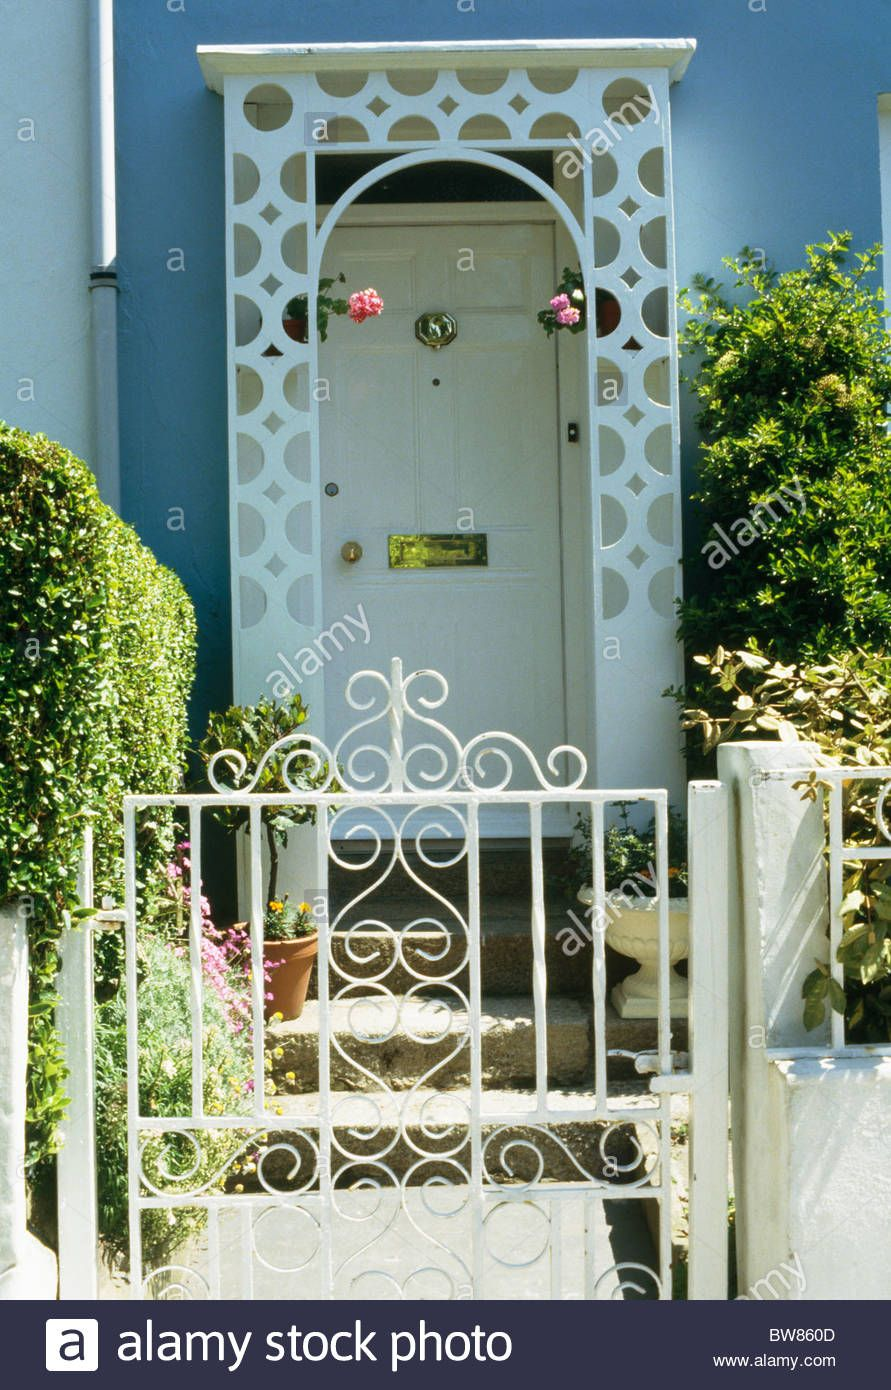 White Wrought Iron Gate In Front Of Small House With White Wooden